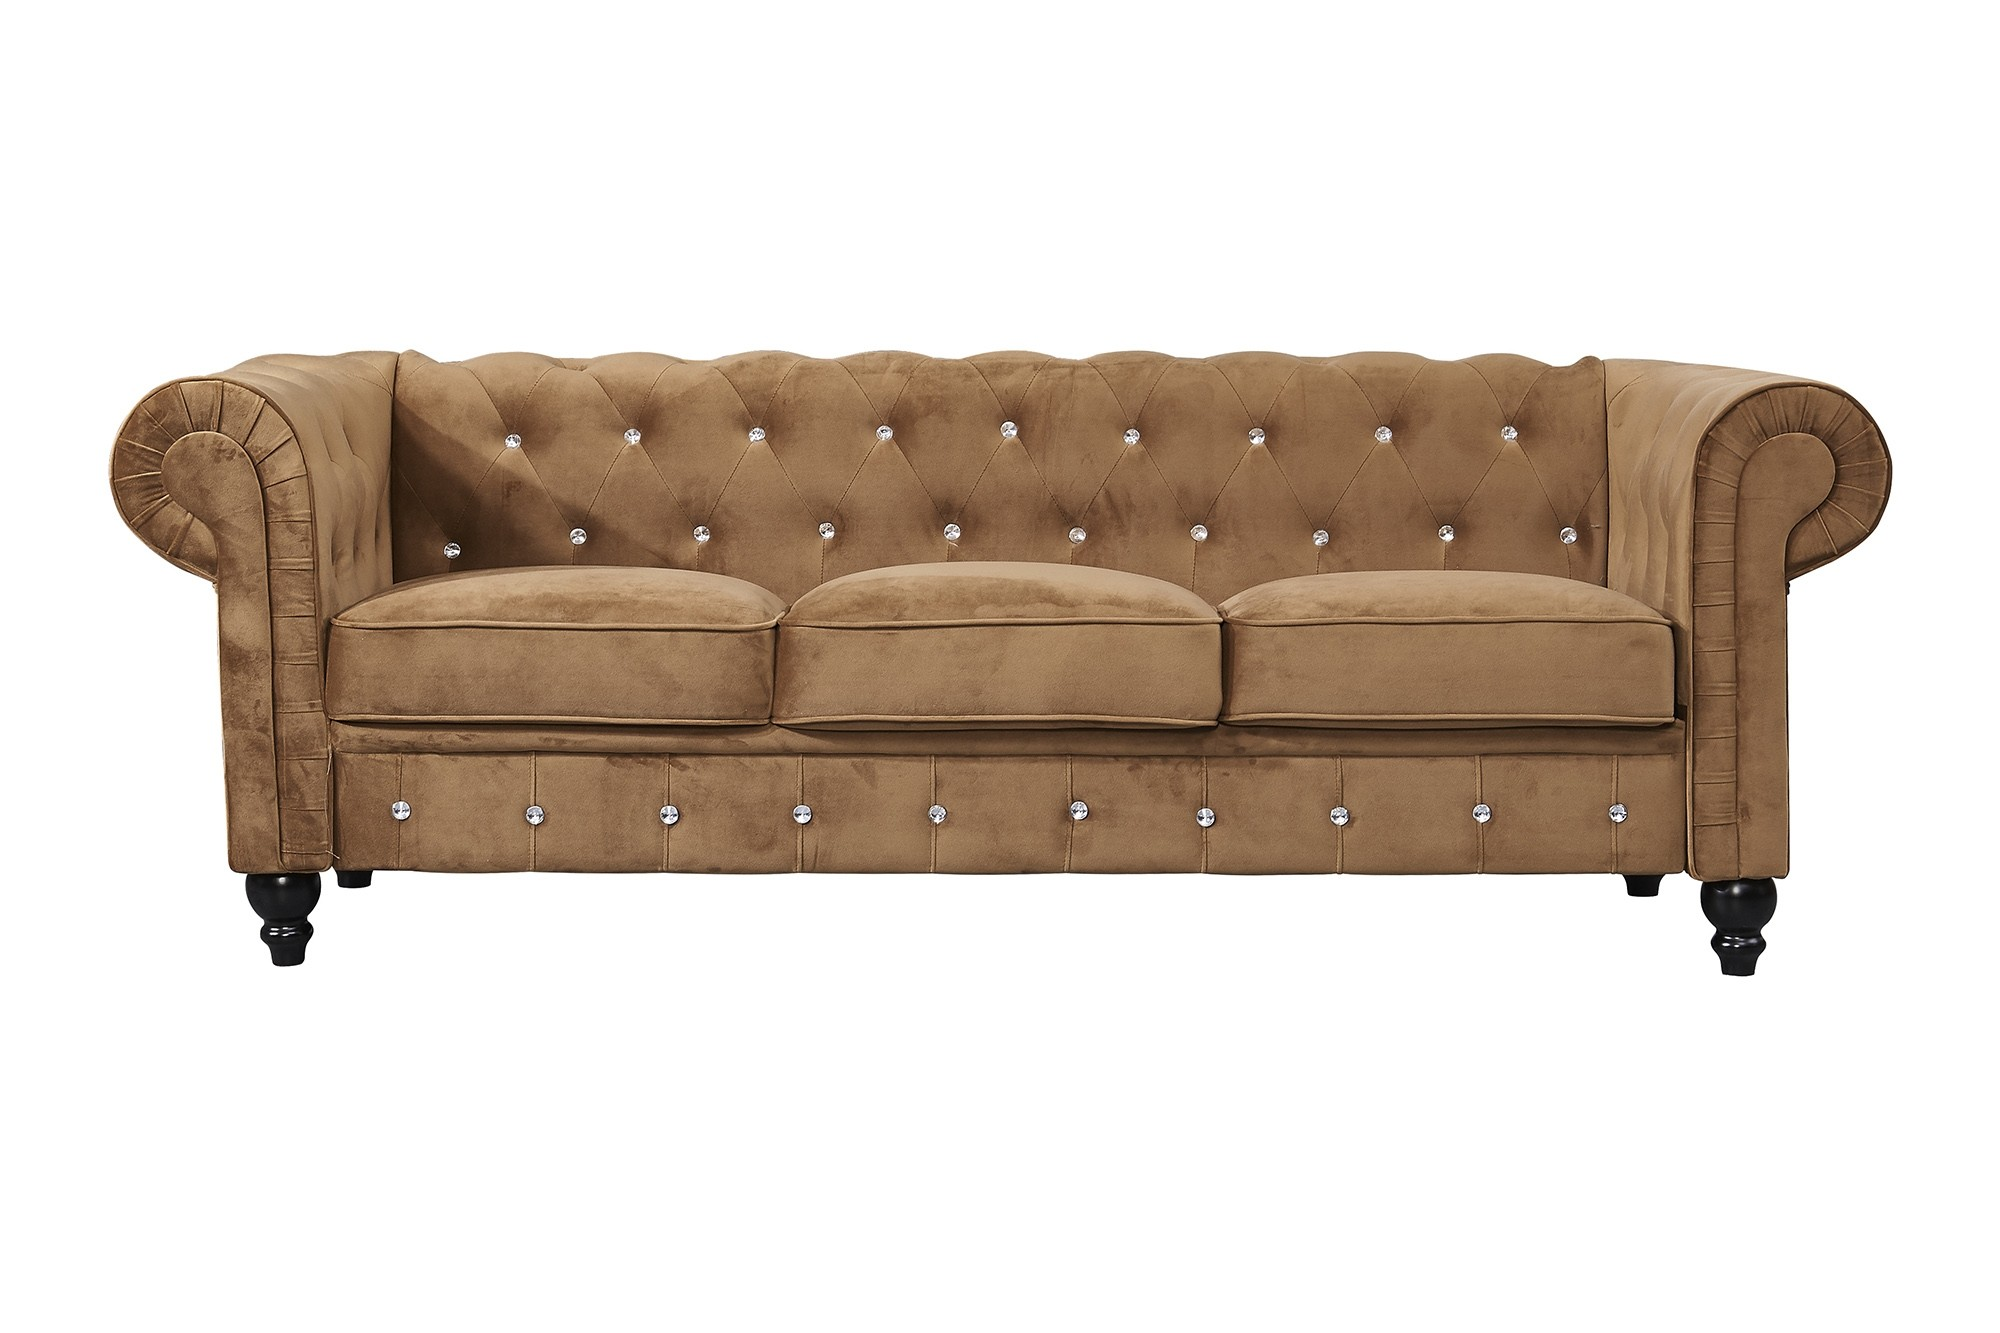 Allegra 3 Seater Chesterfield Sofa Brown